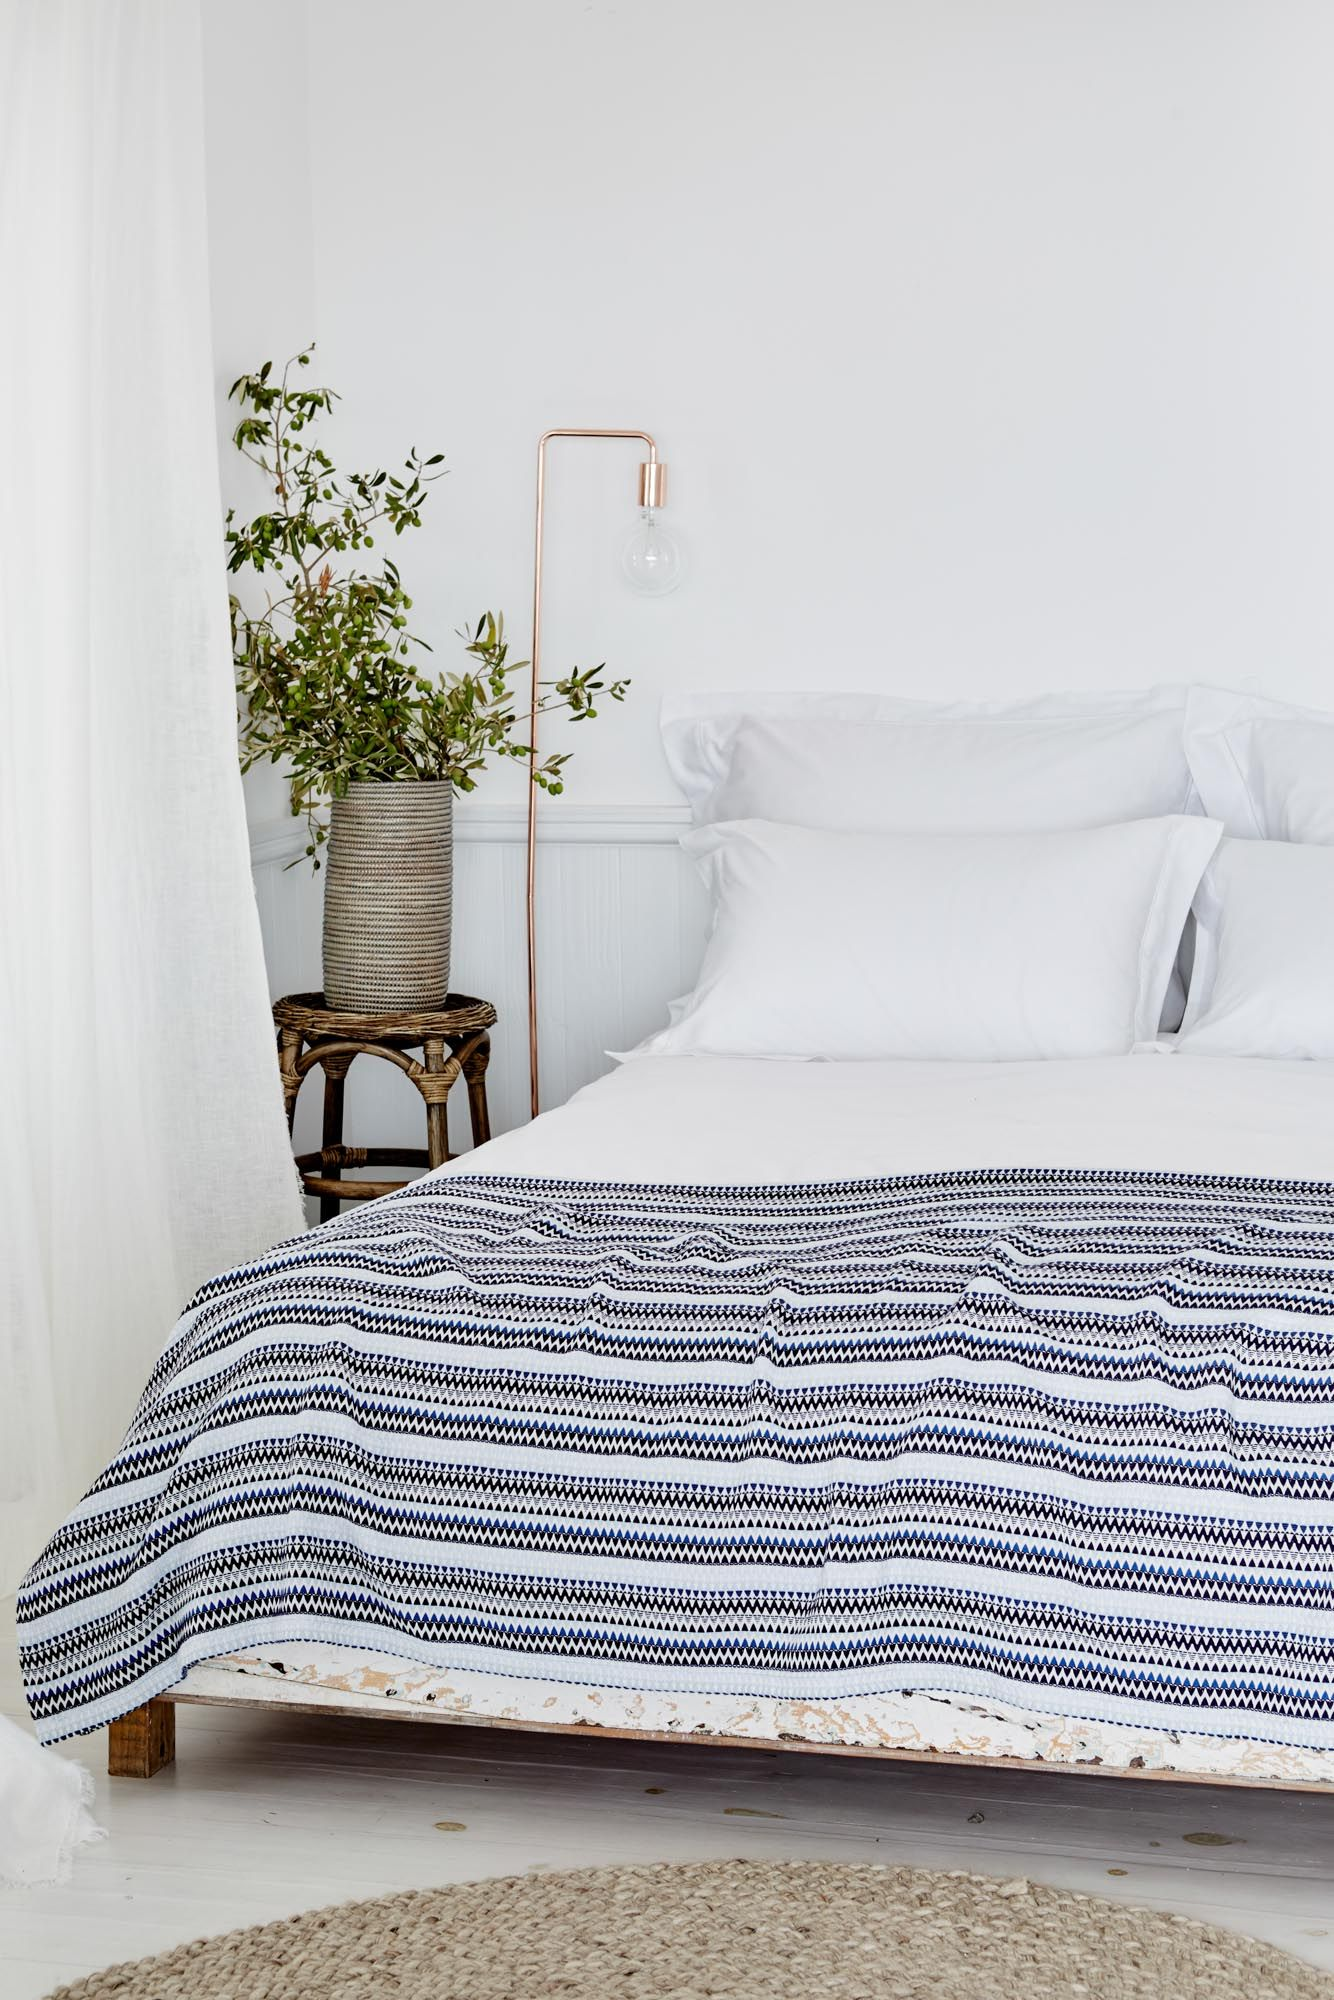 Tagesdecke Bett Wolle Introduce A Blast Of Pattern And Colour Into A Crisp White